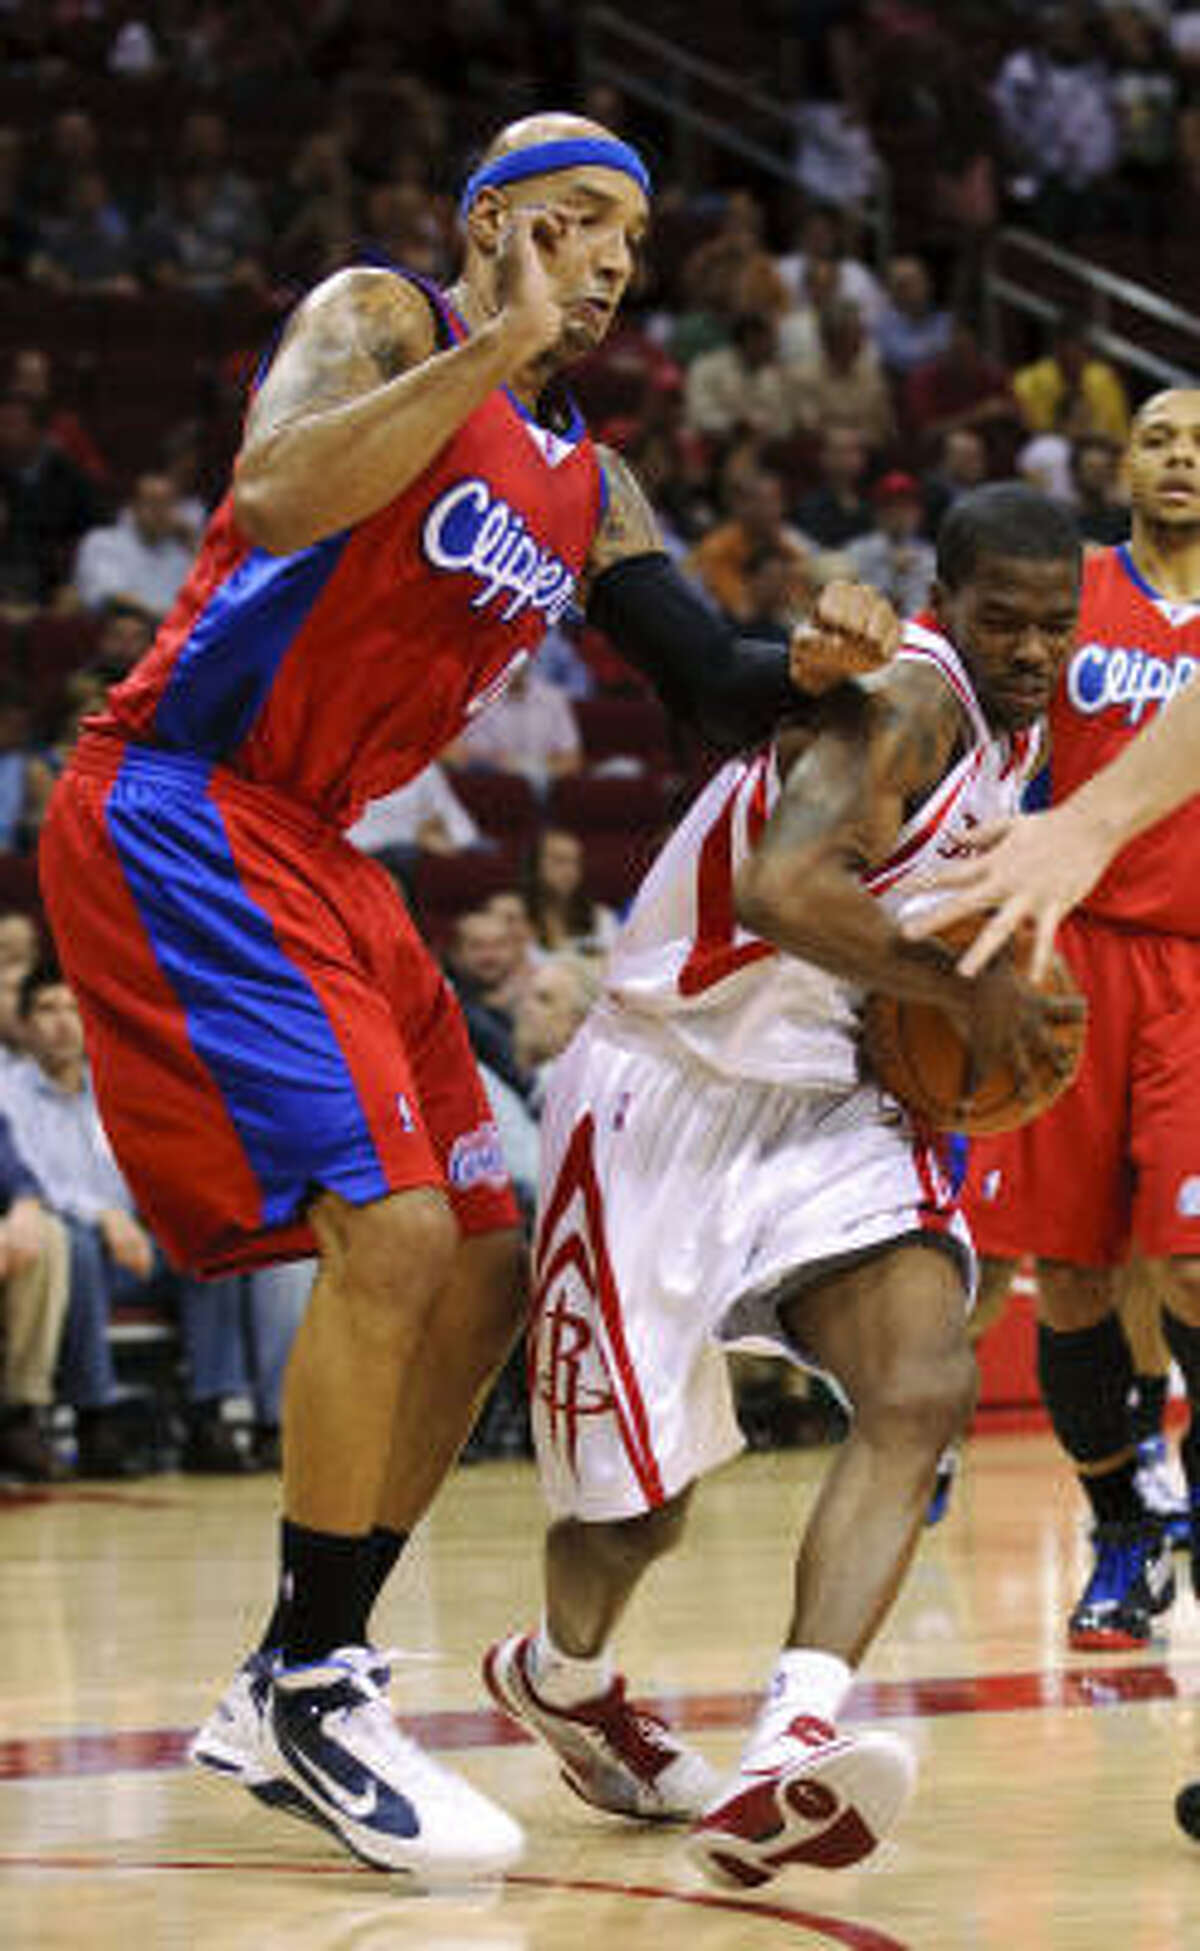 Rockets guard Aaron Brooks, right, drives around Clippers' Drew Gooden. Brooks finished with 18 points and dished out nine assists.